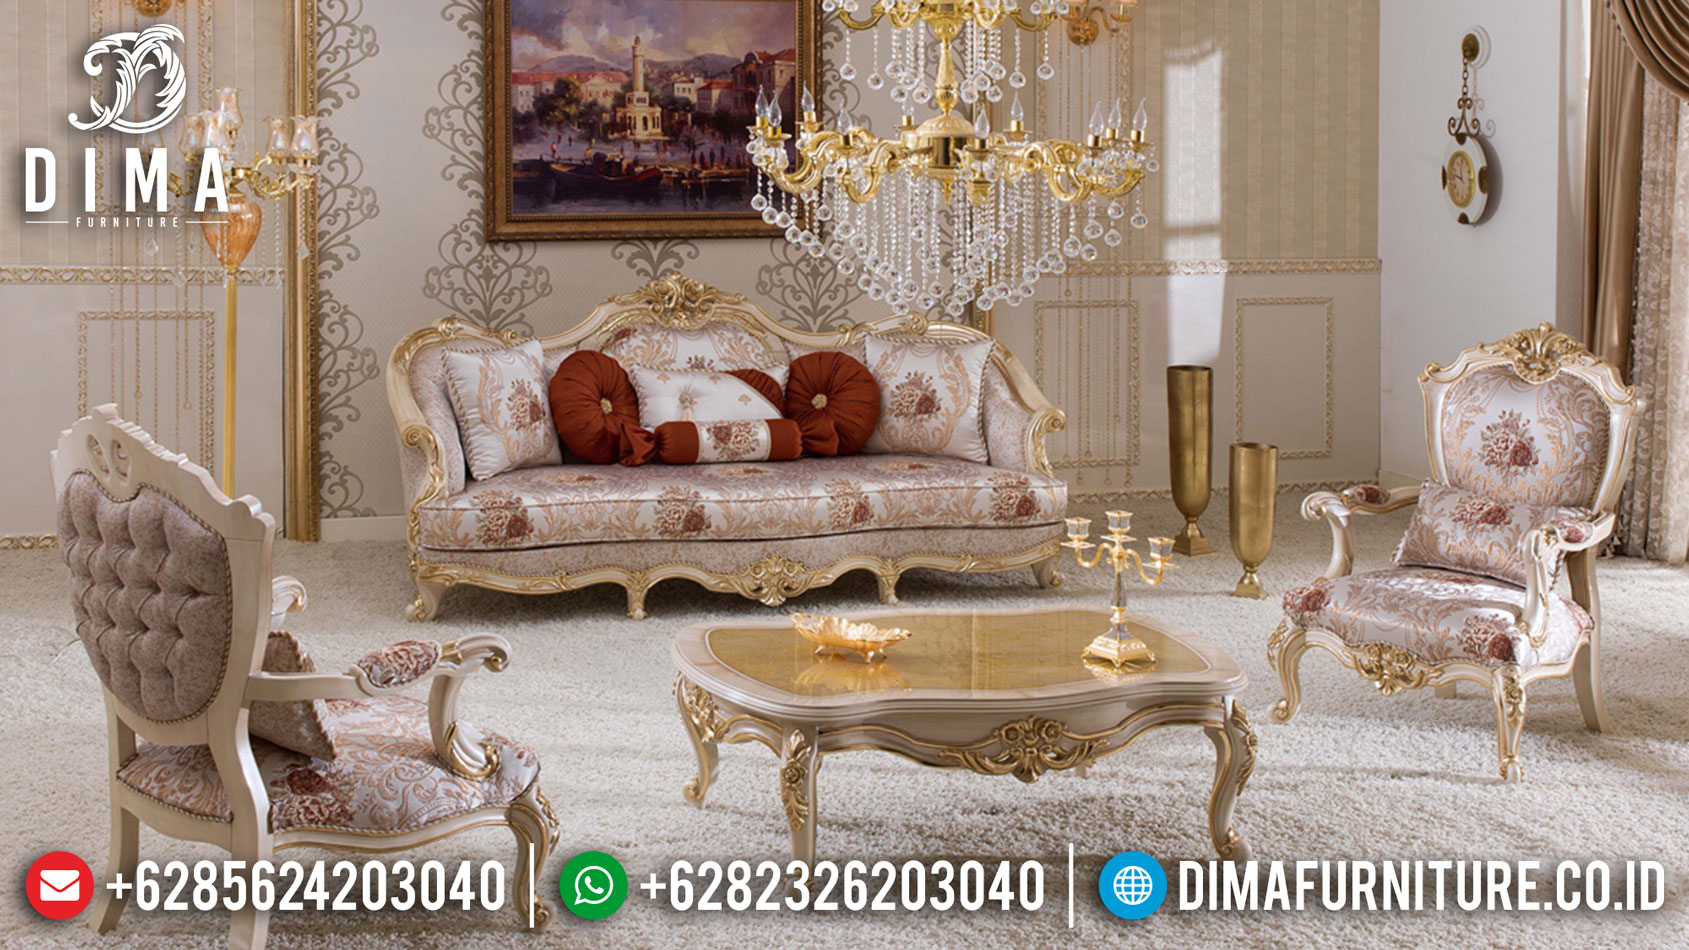 Turkish Style Sofa Tamu Mewah Jepara Ukiran Luxury Elegant Living Room TTJ-1050